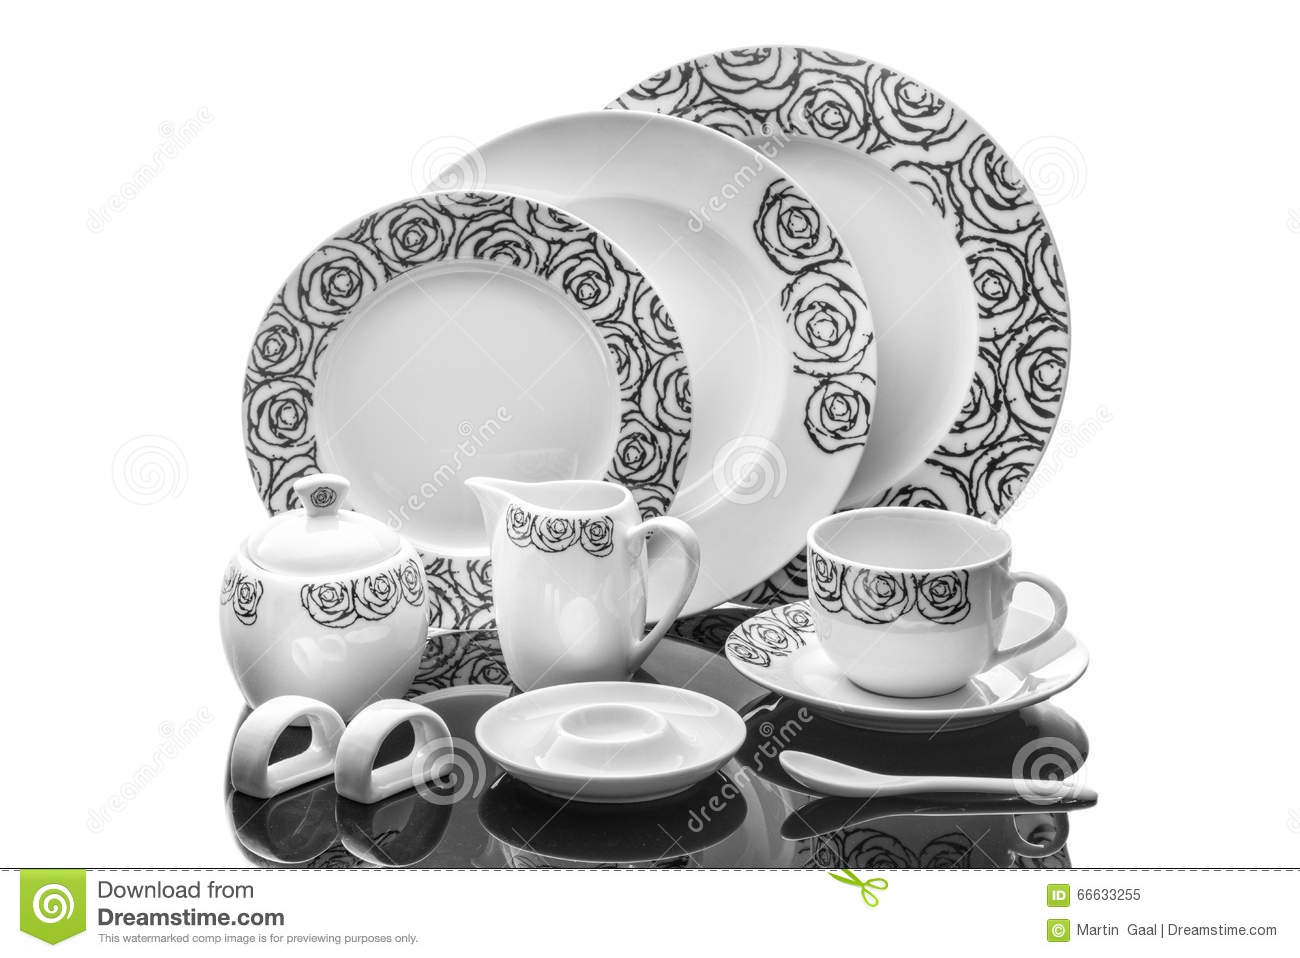 Dining Porcelain Set Of Plates, Cup And Napkin Ring With Ornament Isolated  On White Background, Product Photography, Serving Set Stock Image   Image  Of ...